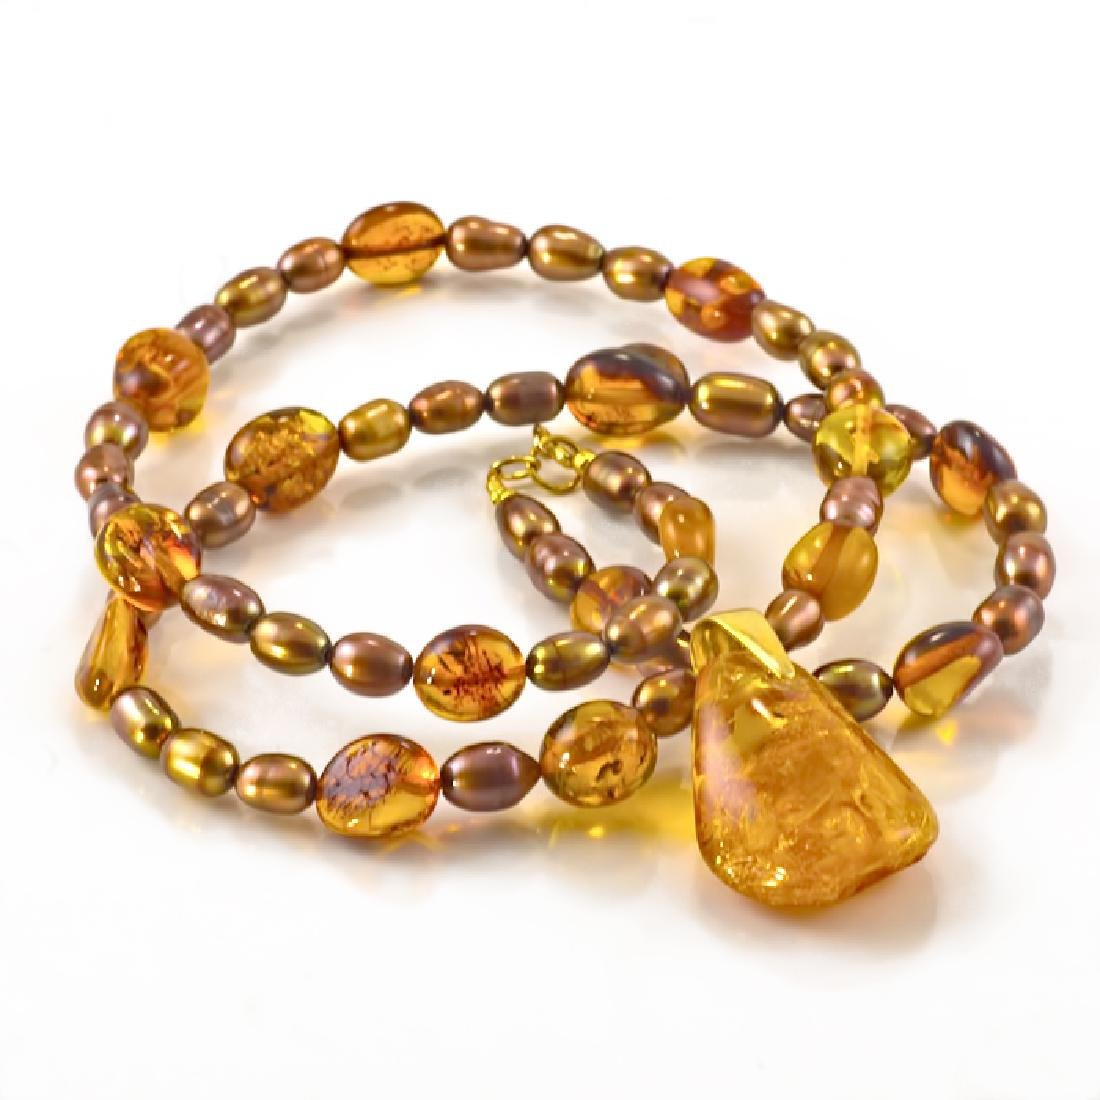 Golden Bronze Pearl and Amber necklace with Amber - 2